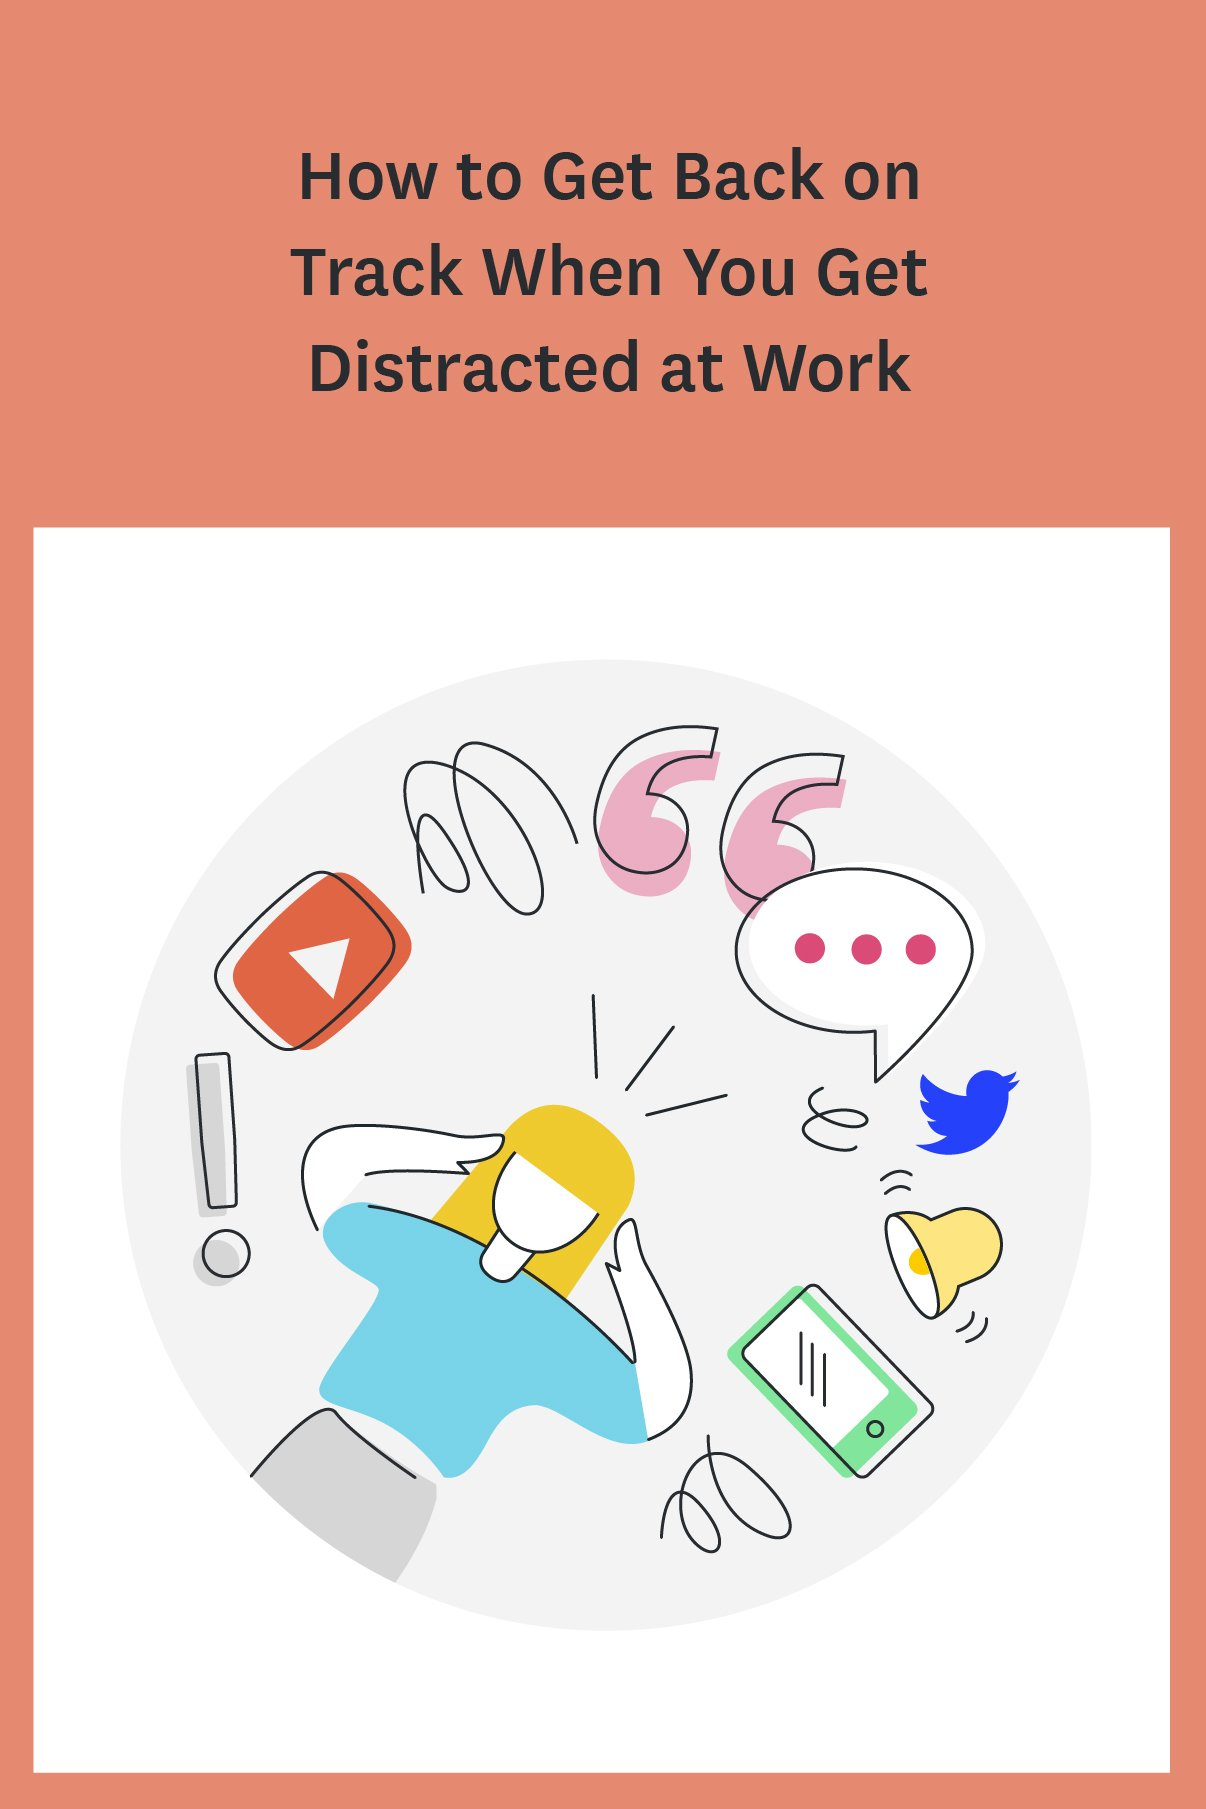 Find yourself getting distracted at work? Between social media, chatty coworkers, needy bosses, and the demands of your daily to do list, it's easy to get distracted. Here are 7 ways to get back on track after you get distracted.